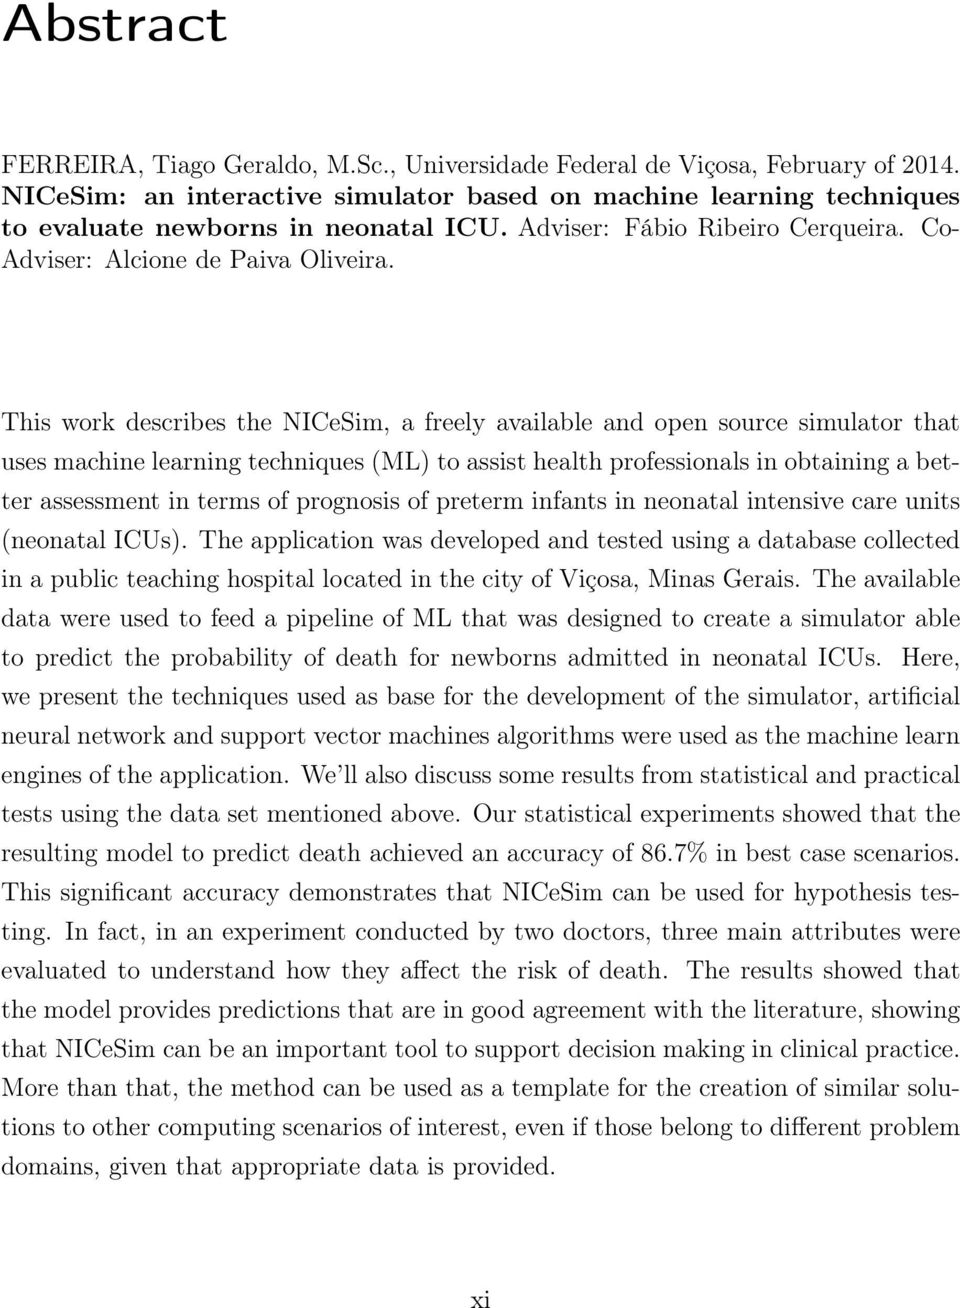 This work describes the NICeSim, a freely available and open source simulator that uses machine learning techniques (ML) to assist health professionals in obtaining a better assessment in terms of